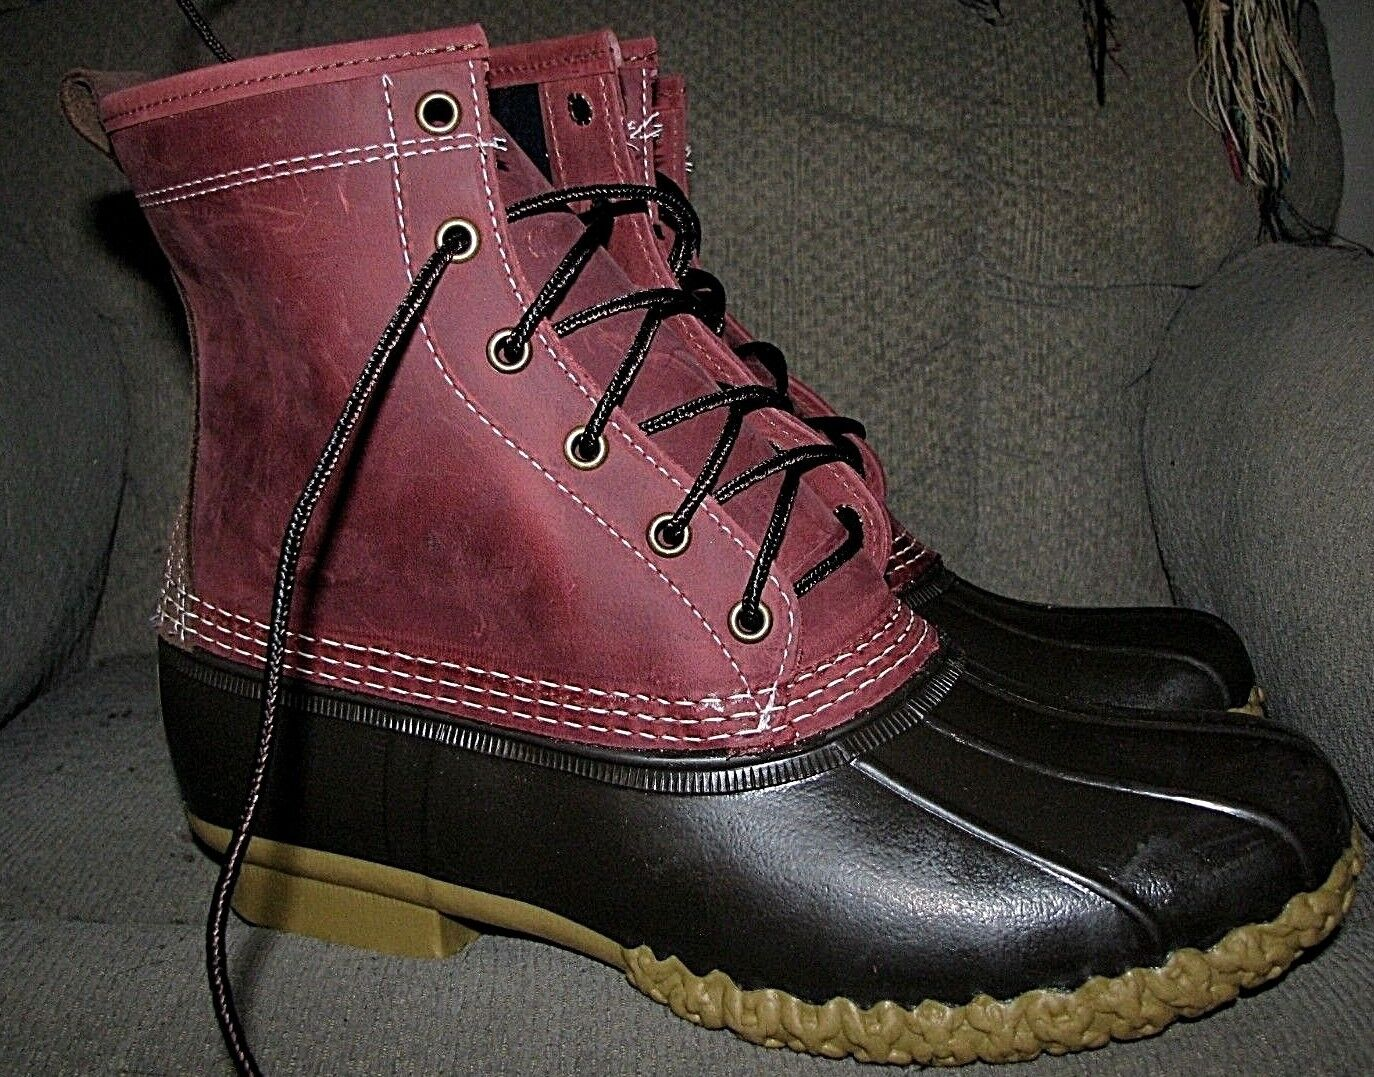 Men's L.L.BEAN Duck Boots (Small Batch Limited Edition) Maroon  Brown (Size 10)